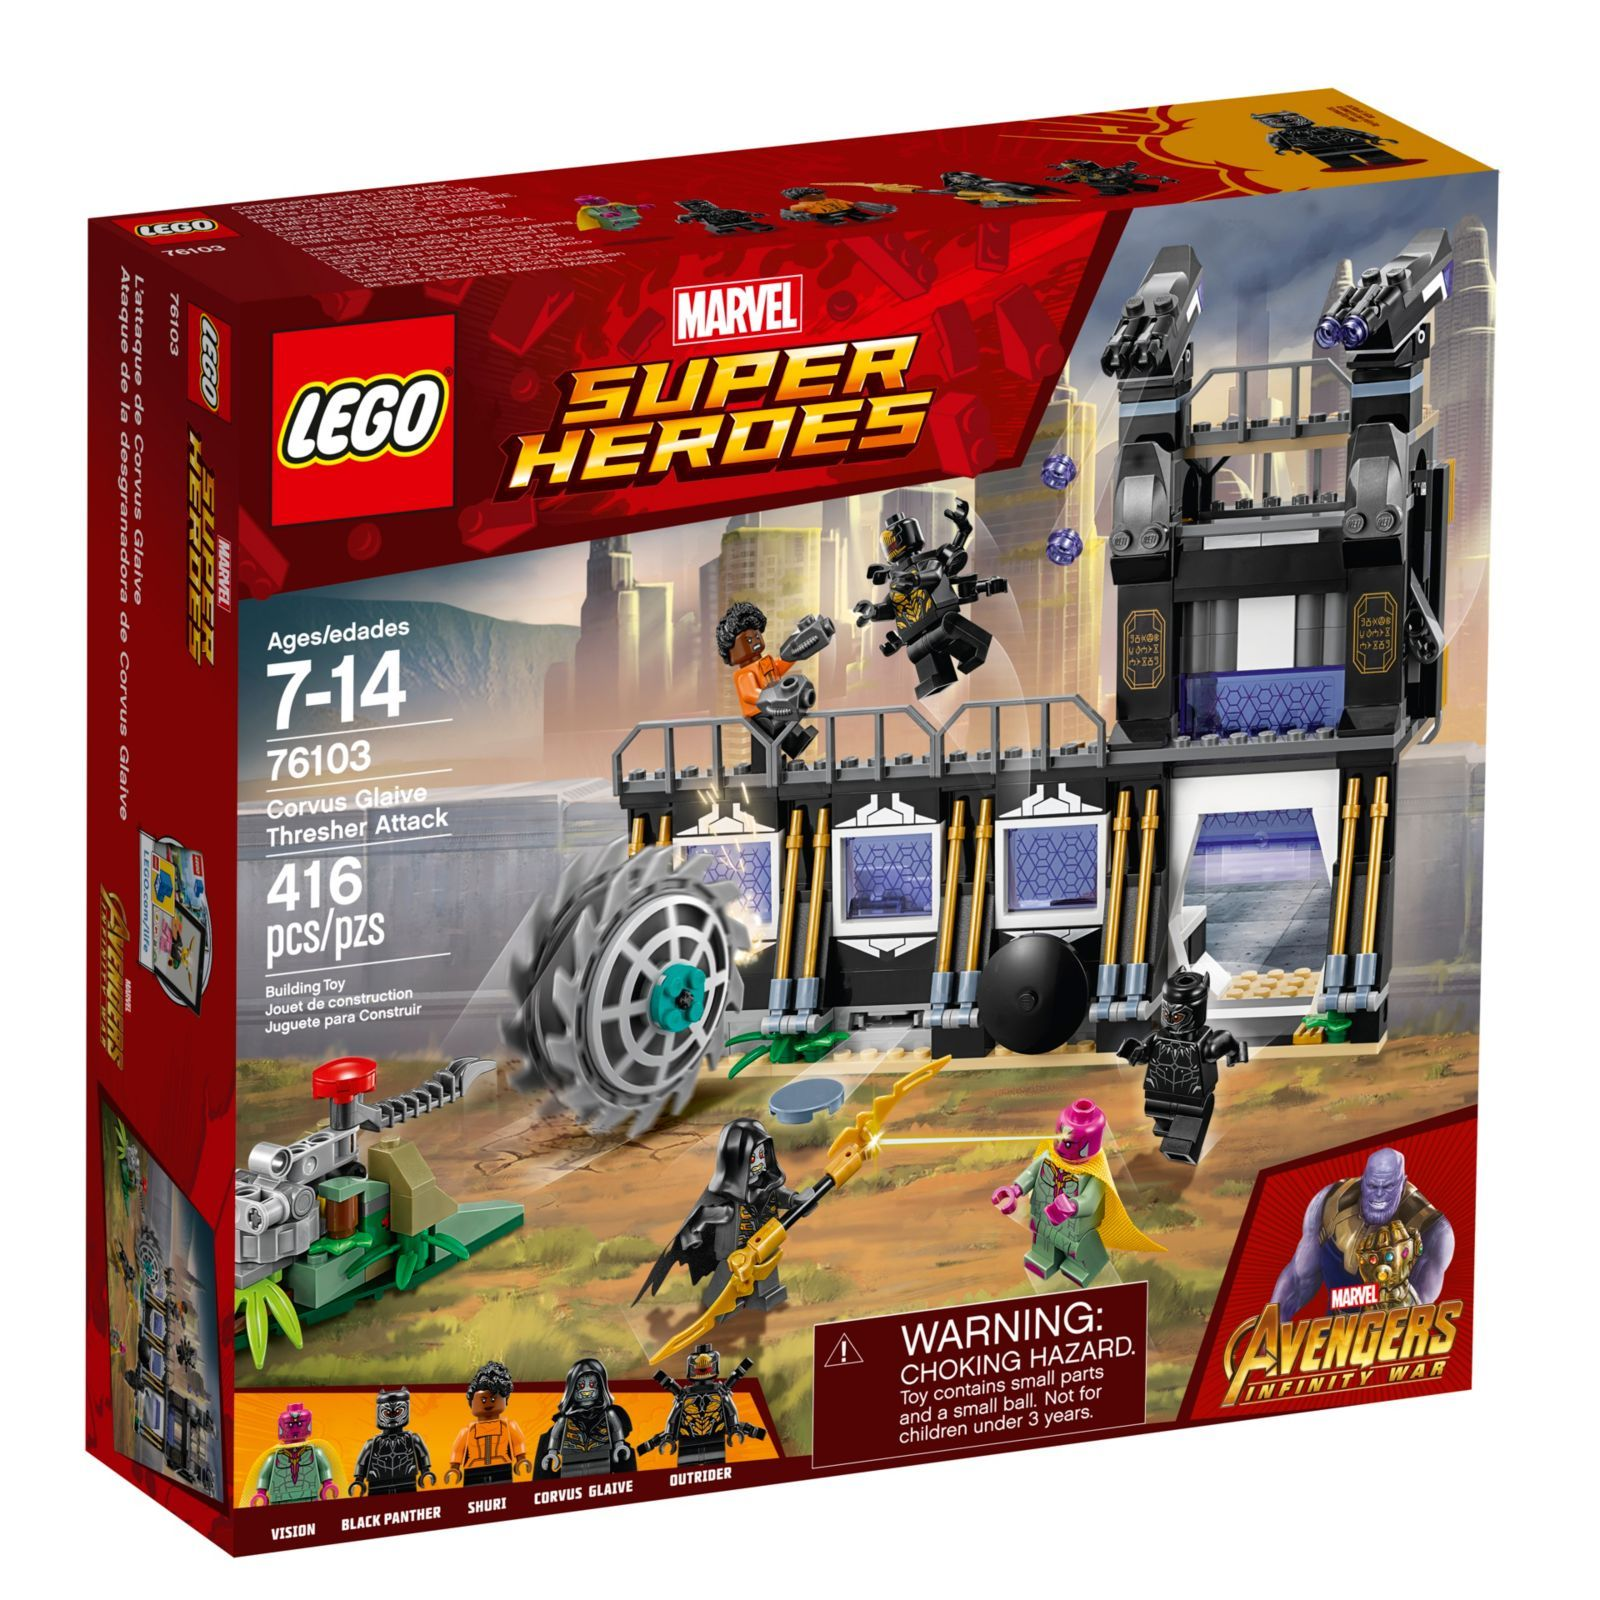 Corvus Glaive Thresher Attack 76103 Lego Marvel Buy Online At The Official Lego Shop Ca Lego Marvel Super Heroes Marvel Avengers Movies Lego Marvel S Avengers